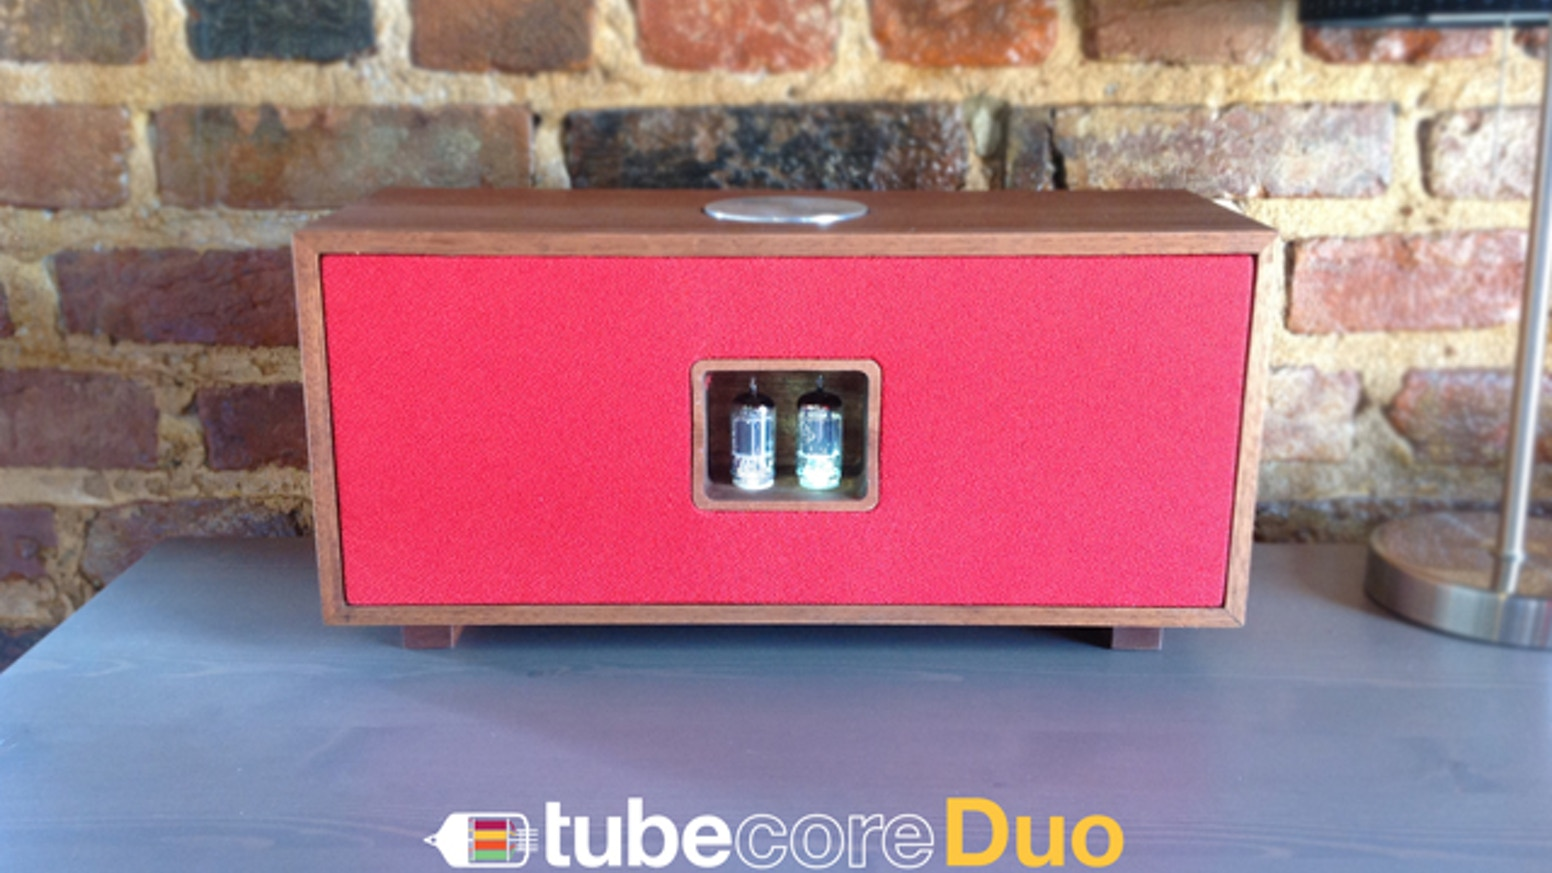 Tubecore Duo By Audio Kickstarter Advance Speaker Portable Komputer 30 The Compact Yet Powerful Tube Driven Bluetooth Thats Wifi Enabled Runs Xbmc And Can Stream Music Hd Movies